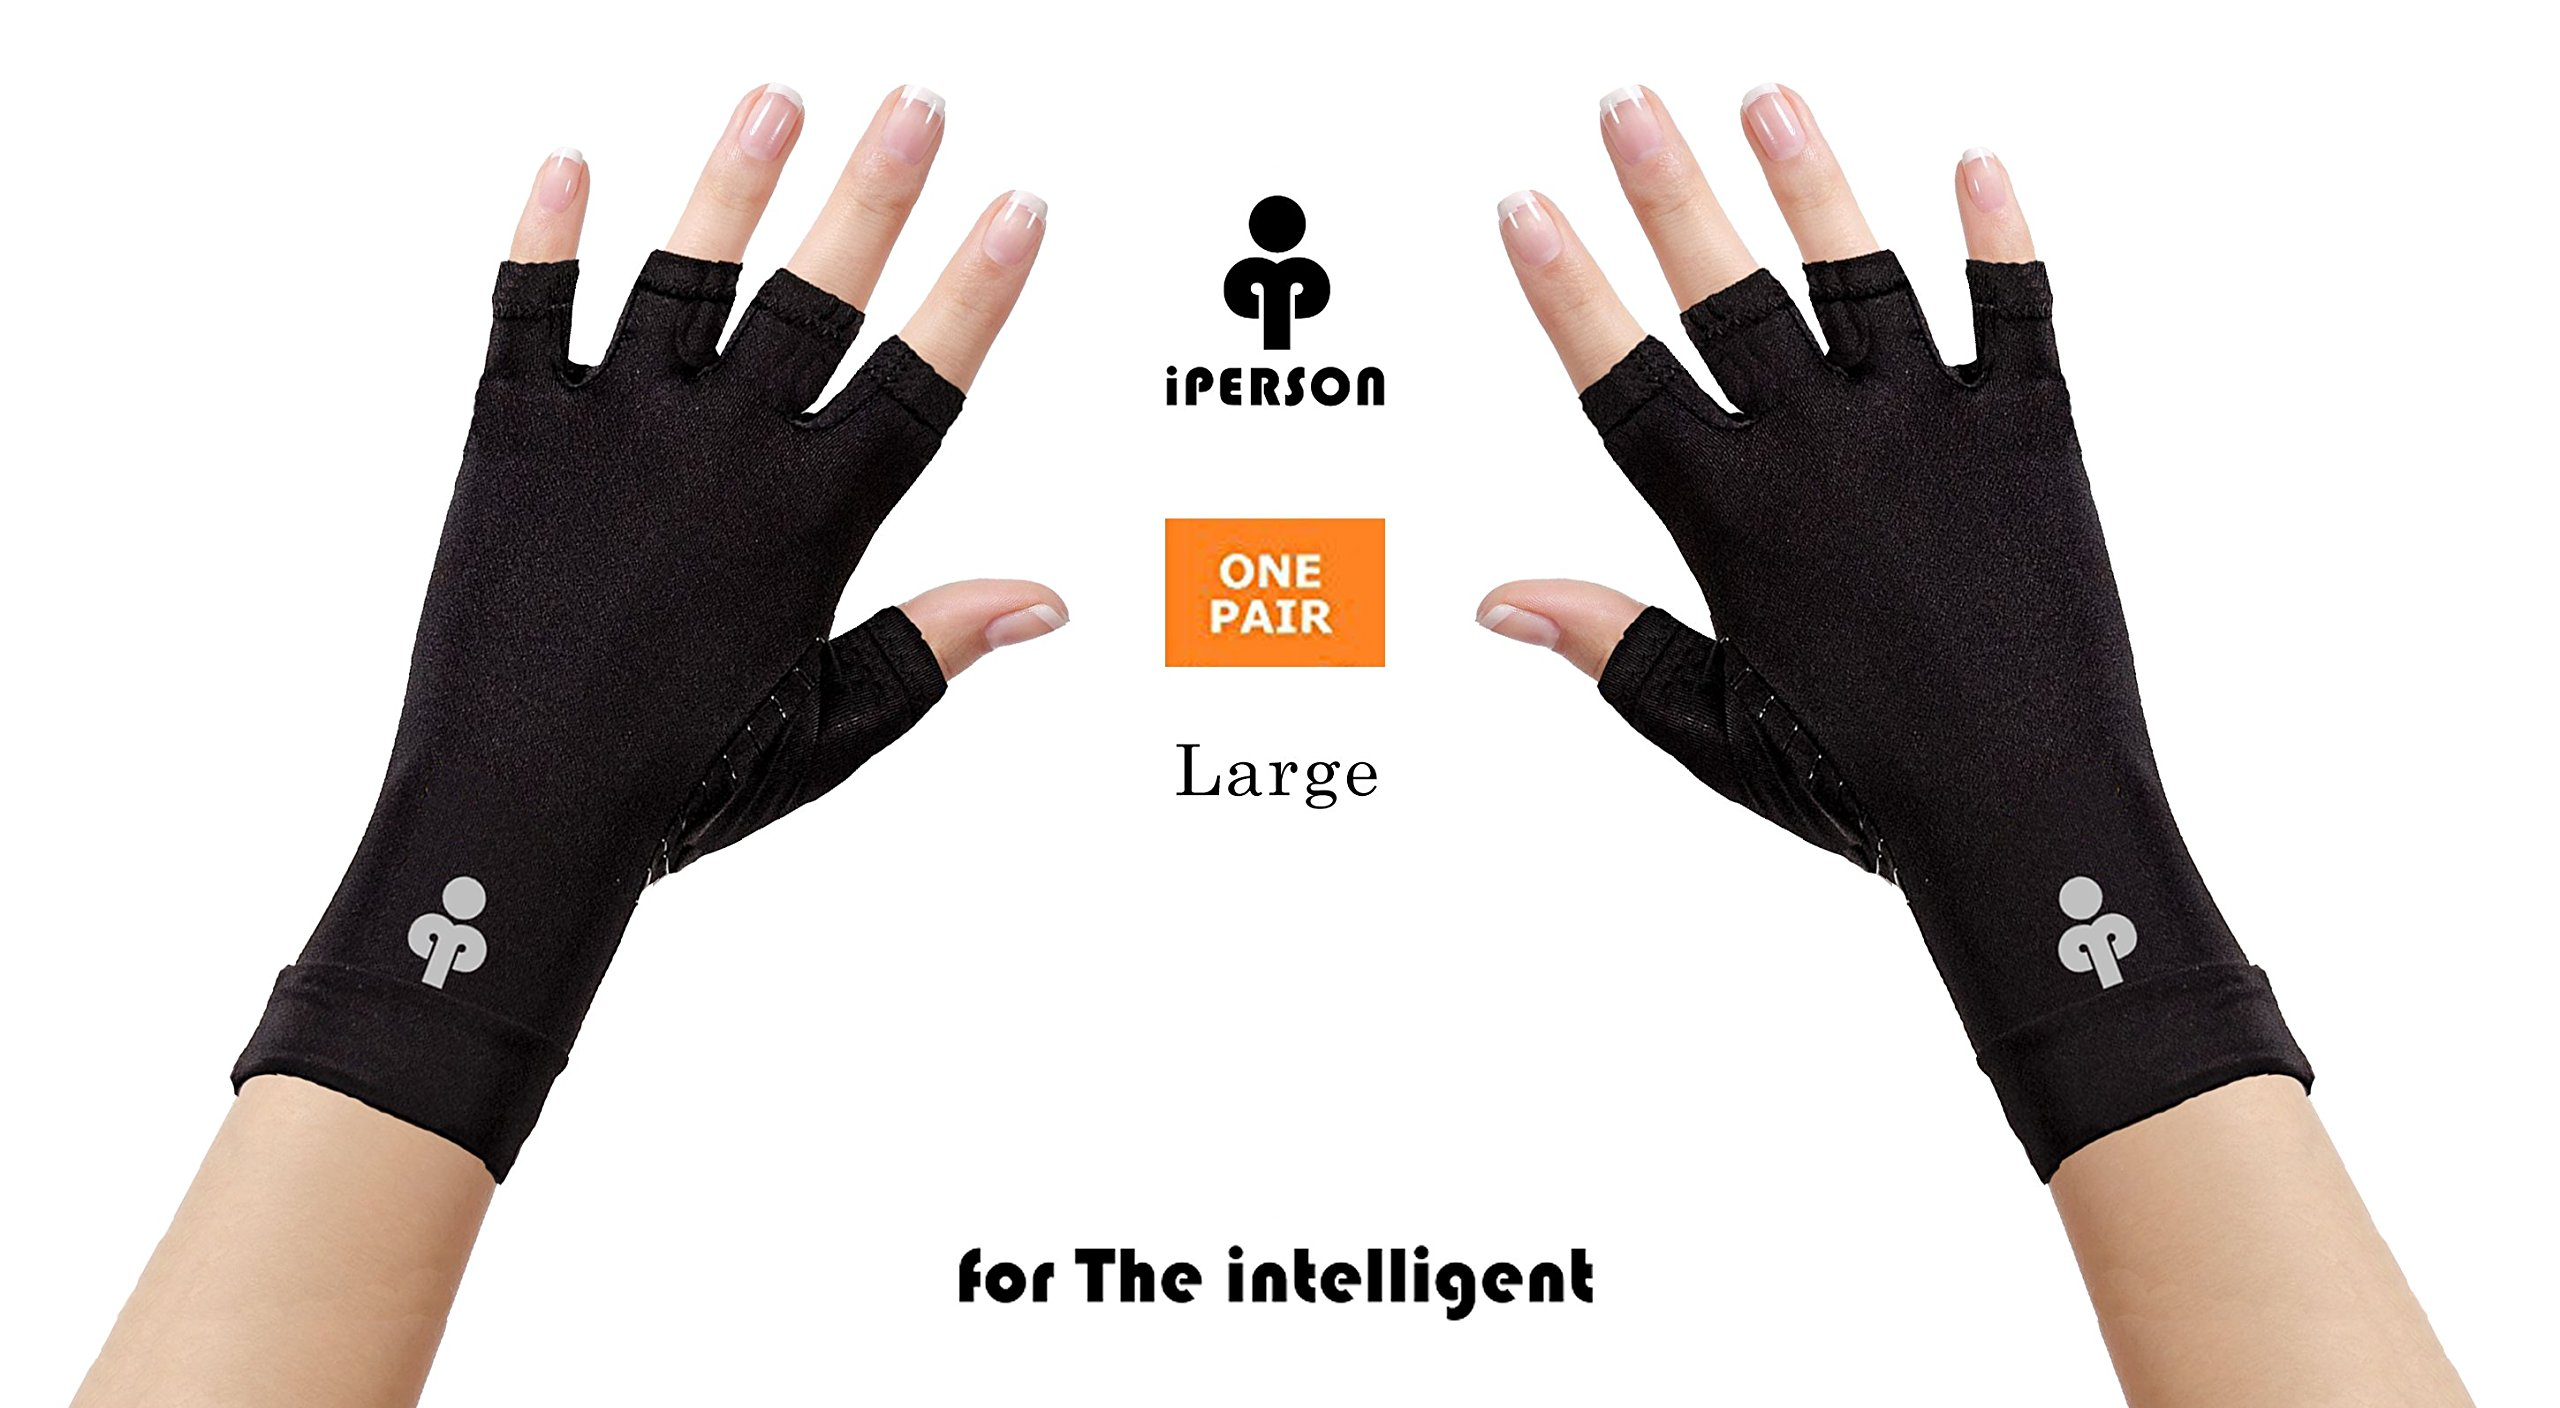 iPerson® Arthritis Gloves Copper Infused Compression GUARANTEED To Speed Up Recovery Relieve Symptoms of Arthritis RSI Carpal Tunnel Tendonitis for Men & Women - 1 Pair (Large)